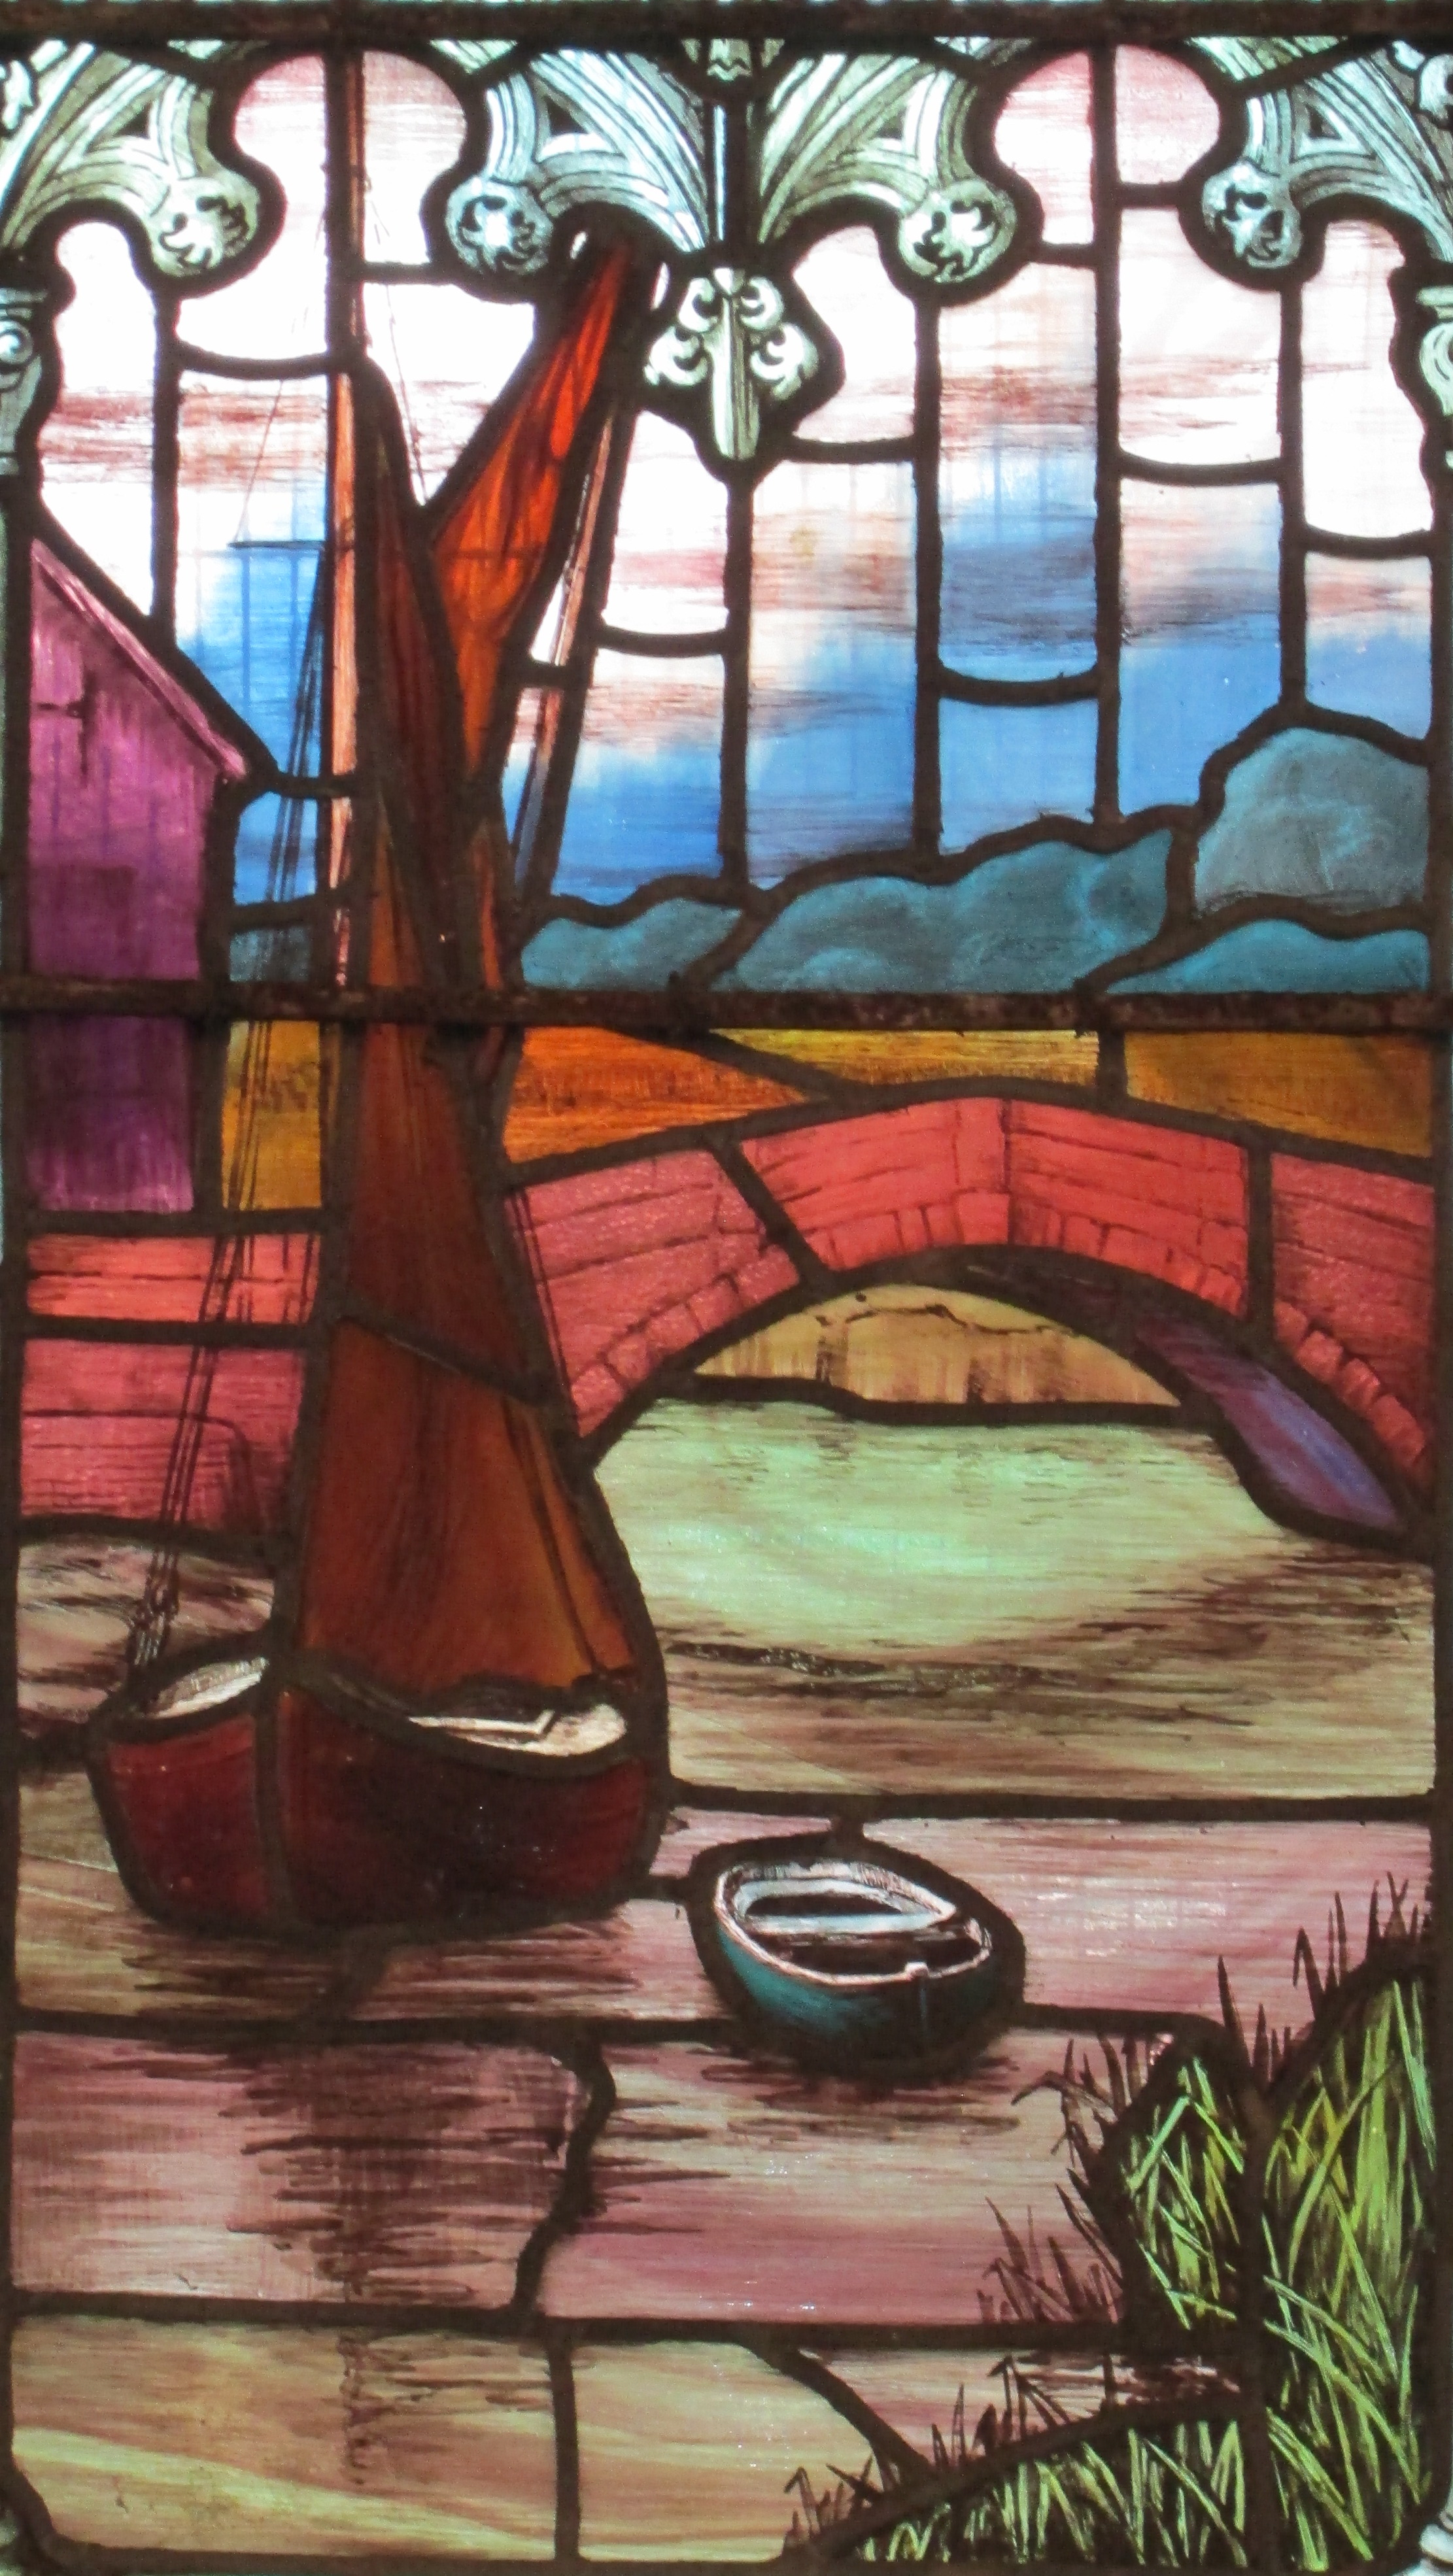 stained-glass window by Mary Lowndes featuring old Snape Bridge